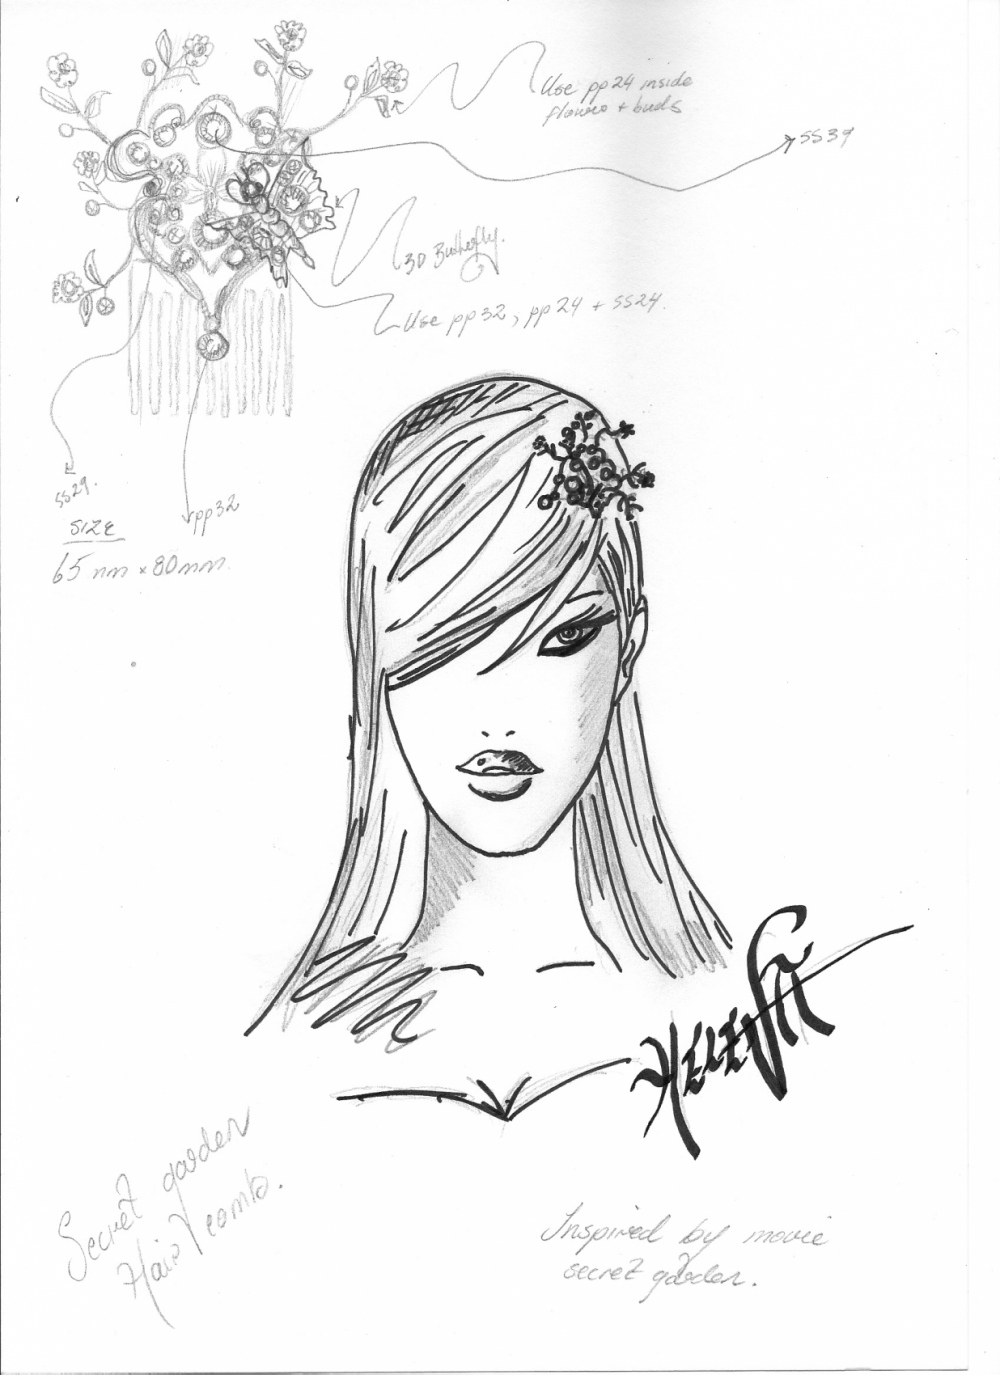 Curvaceous Design Portfolio - Concept sketch and a detailed hair comb was designed.